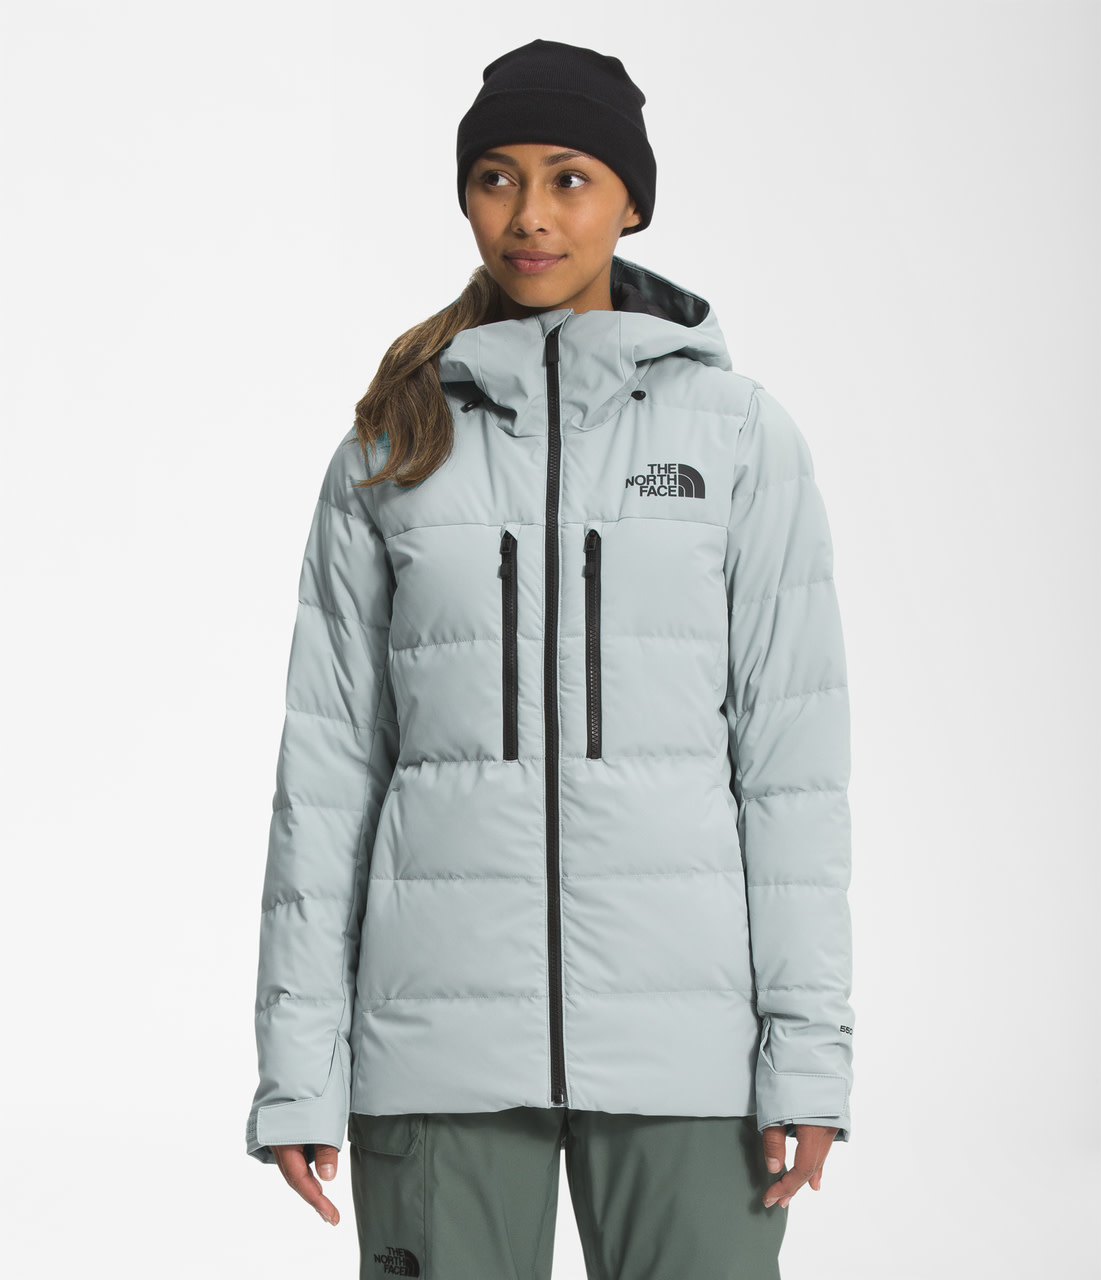 The North Face The North Face W's Corefire Down Jacket